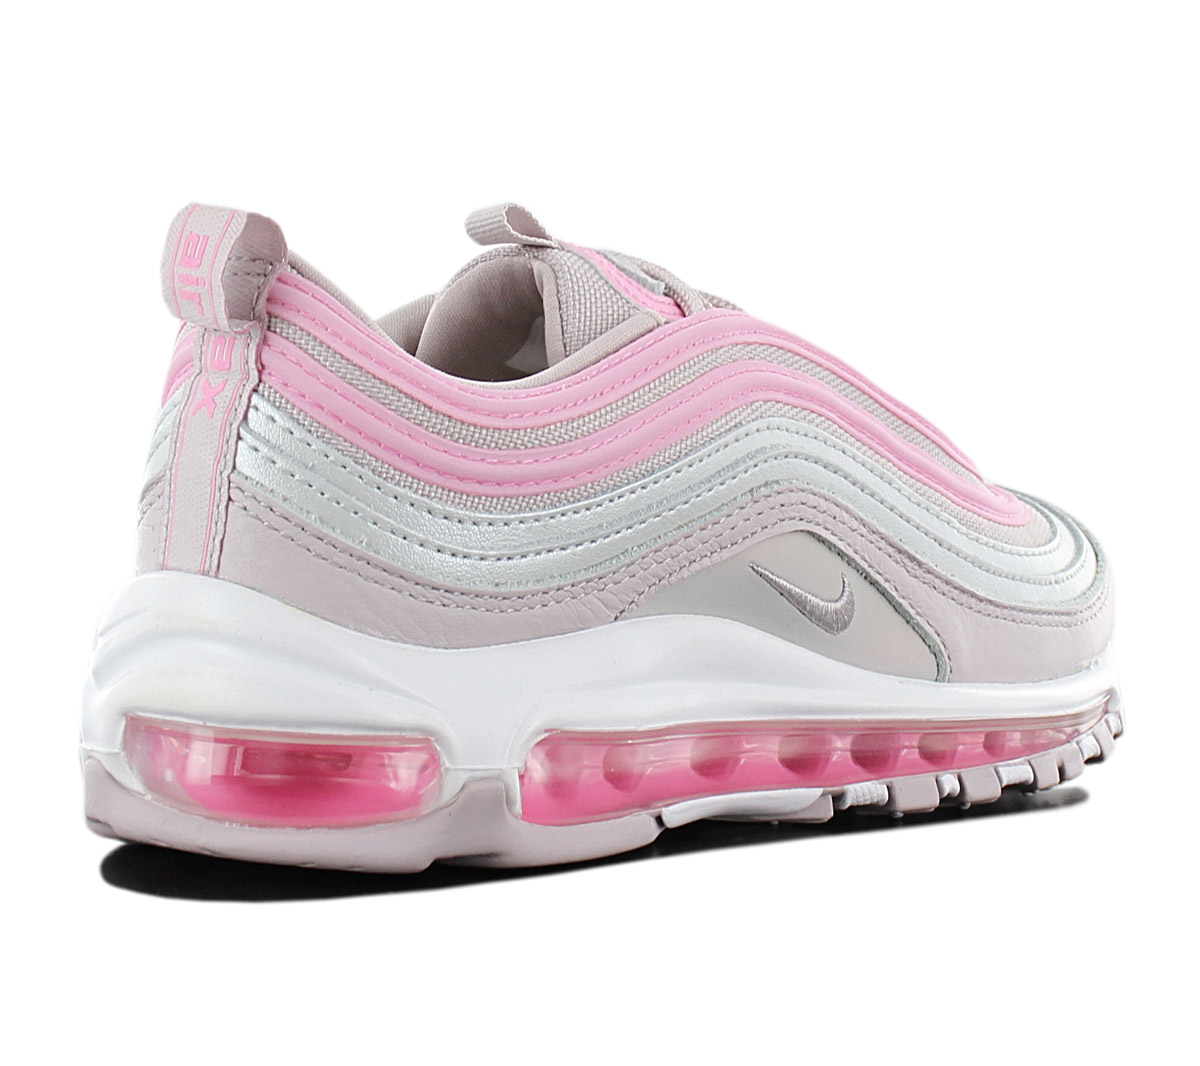 Details about Nike air max 97 LX Women's Sneaker BV1974 500 Purple Pink Shoes Sneakers New